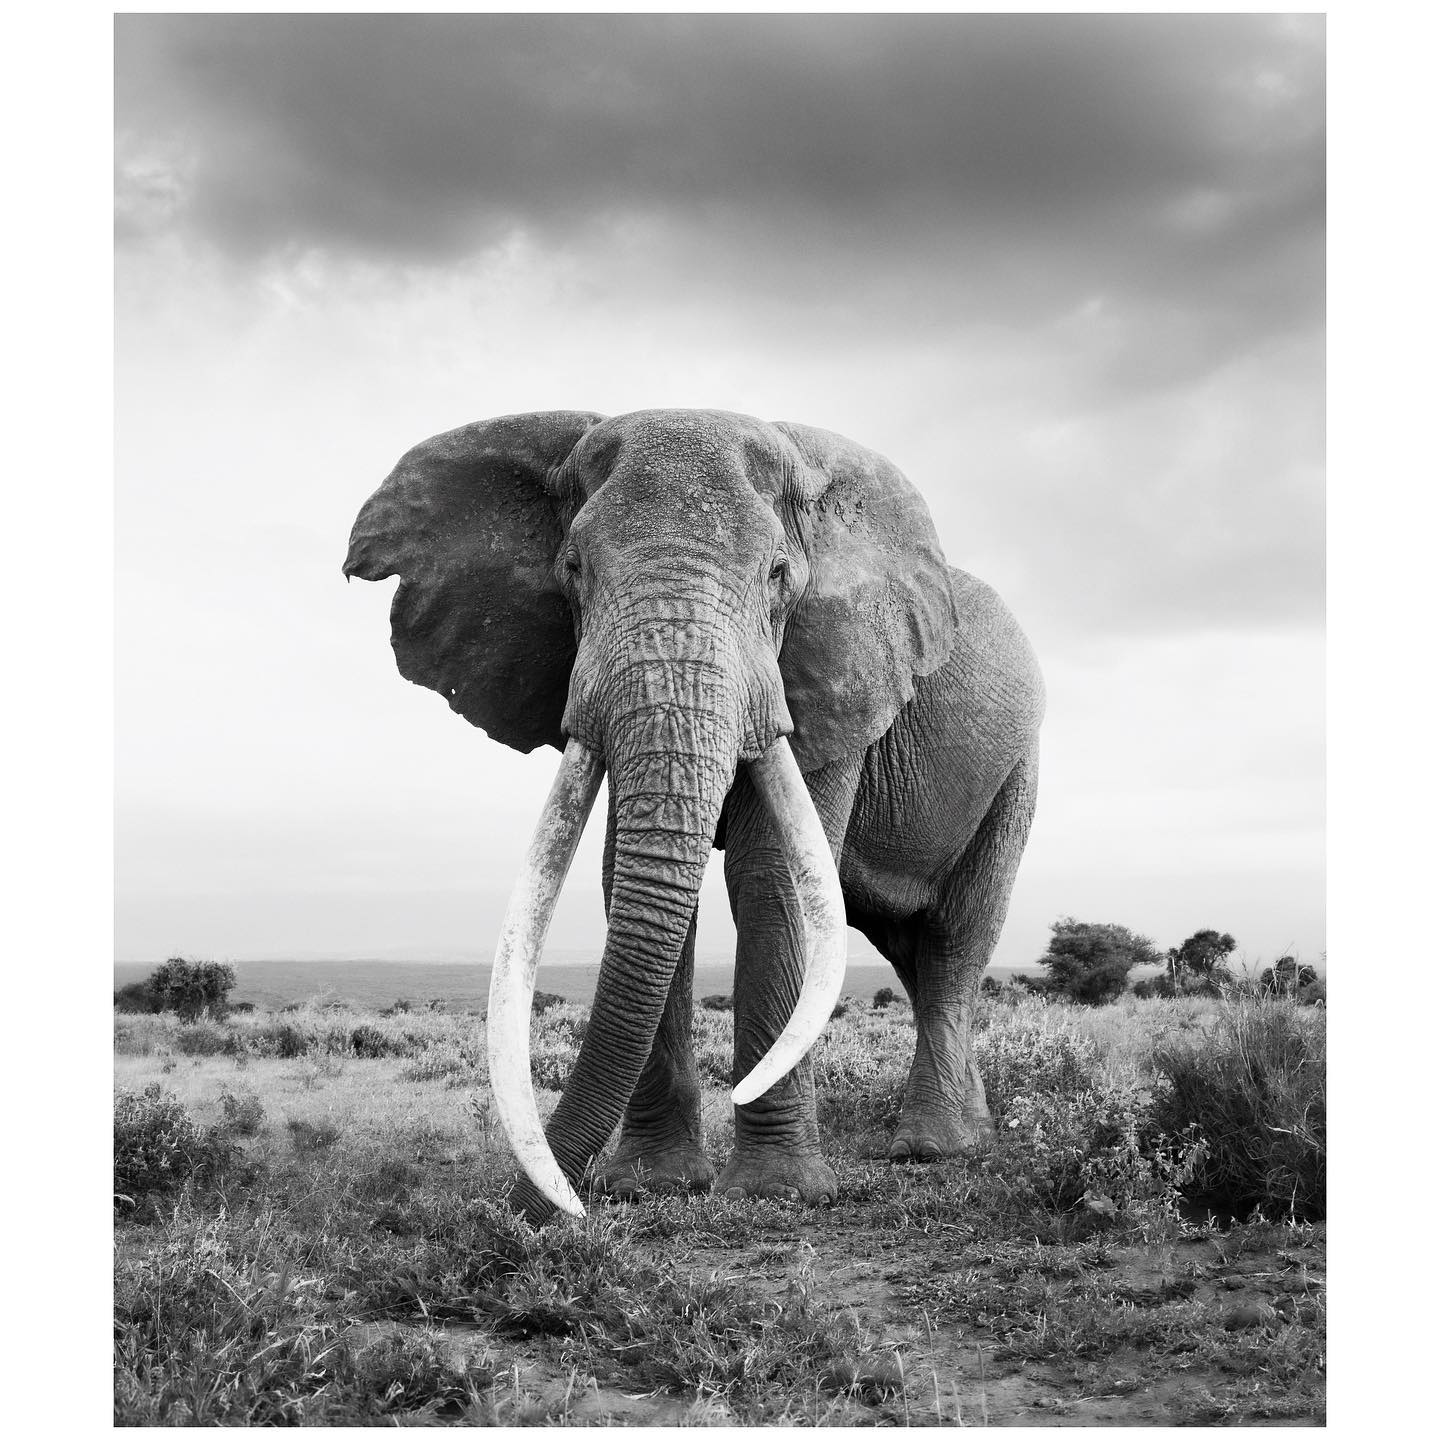 🎉 Prints for Wildlife is coming back for a 2nd Edition! 🎉 They are partnering up with @africanparksnetwork again so don't miss out this time - especially you female photographers. How can you get involved? 📷 If you are a (wildlife) photographer, @printsforwildlife are hosting an open call until the 9th of May. They are especially looking for local talent from across Africa, POC, female identifying photographers and emerging talent, as they want their fundraiser to showcase diverse, new and emerging talent from around the world. Please send in a preview of your best wildlife related work via mail to hello@printsforwildlife.org for a chance to be a part of this! Volunteers: They are also looking for volunteers to help them pack and ship prints in their print lab in Amsterdam in the summer months (July & August 2021). Please also reach out via e-mail to hello@printsforwildlife.org if you'd be interested in joining them! Make sure to sign-up for their newsletter on www.printsforwildlife.org to be among the first to be notified when the fundraiser opens.